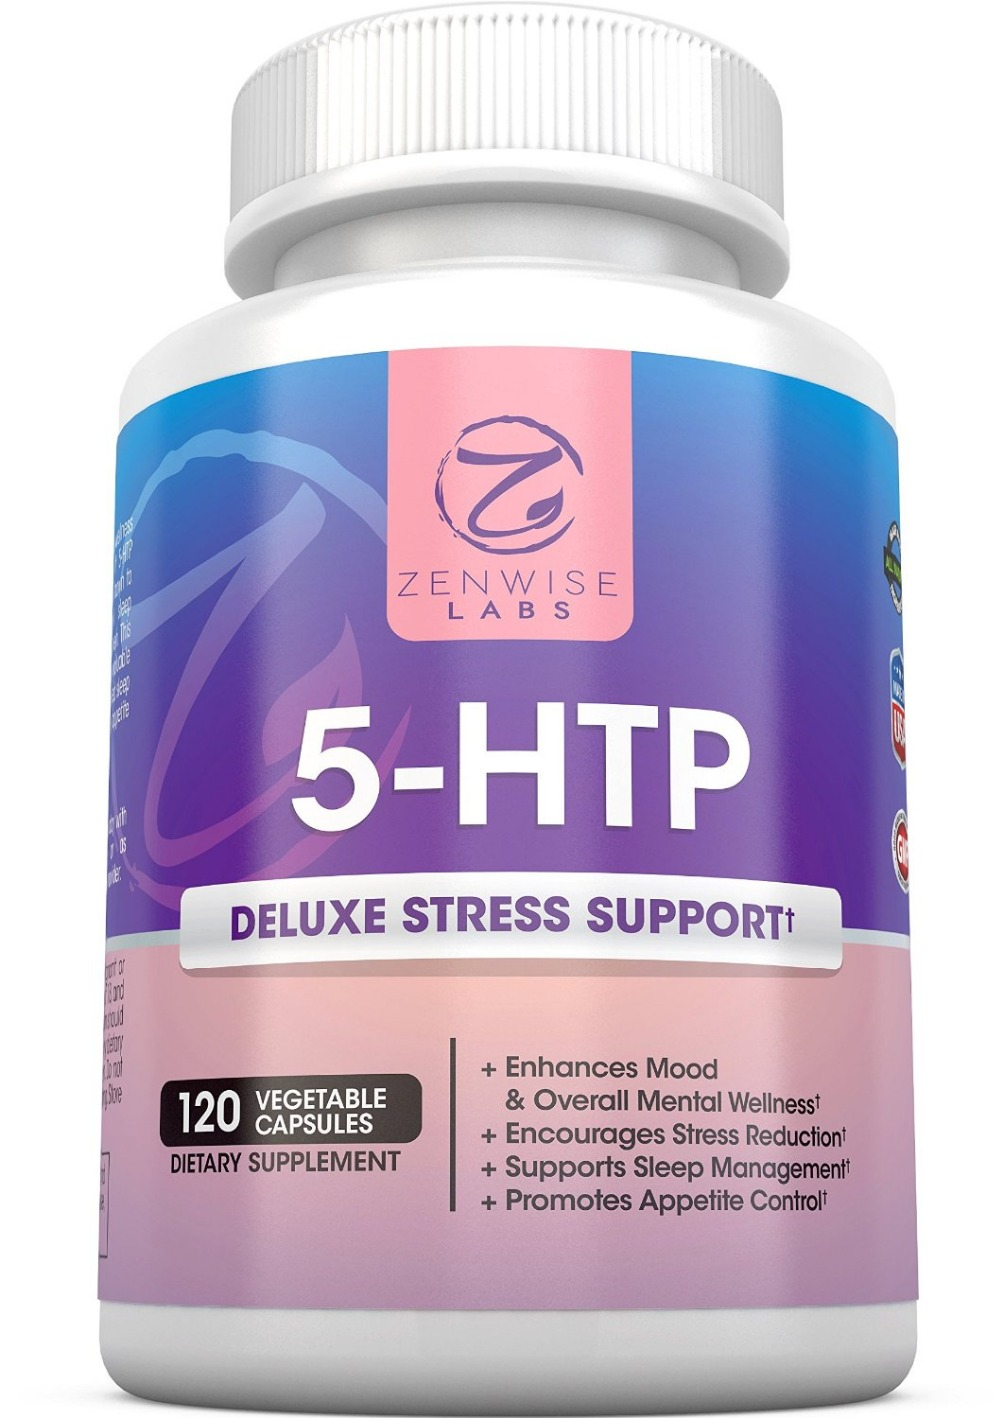 5-HTP - 5 HTP 100 mg  + Vitamin B6 - Stress Relief & Mood Control Supplement - All-Natural Appetite Suppressant - 120 Capsules 98% 5 htp 5 hydroxytryptophane herbal supplement